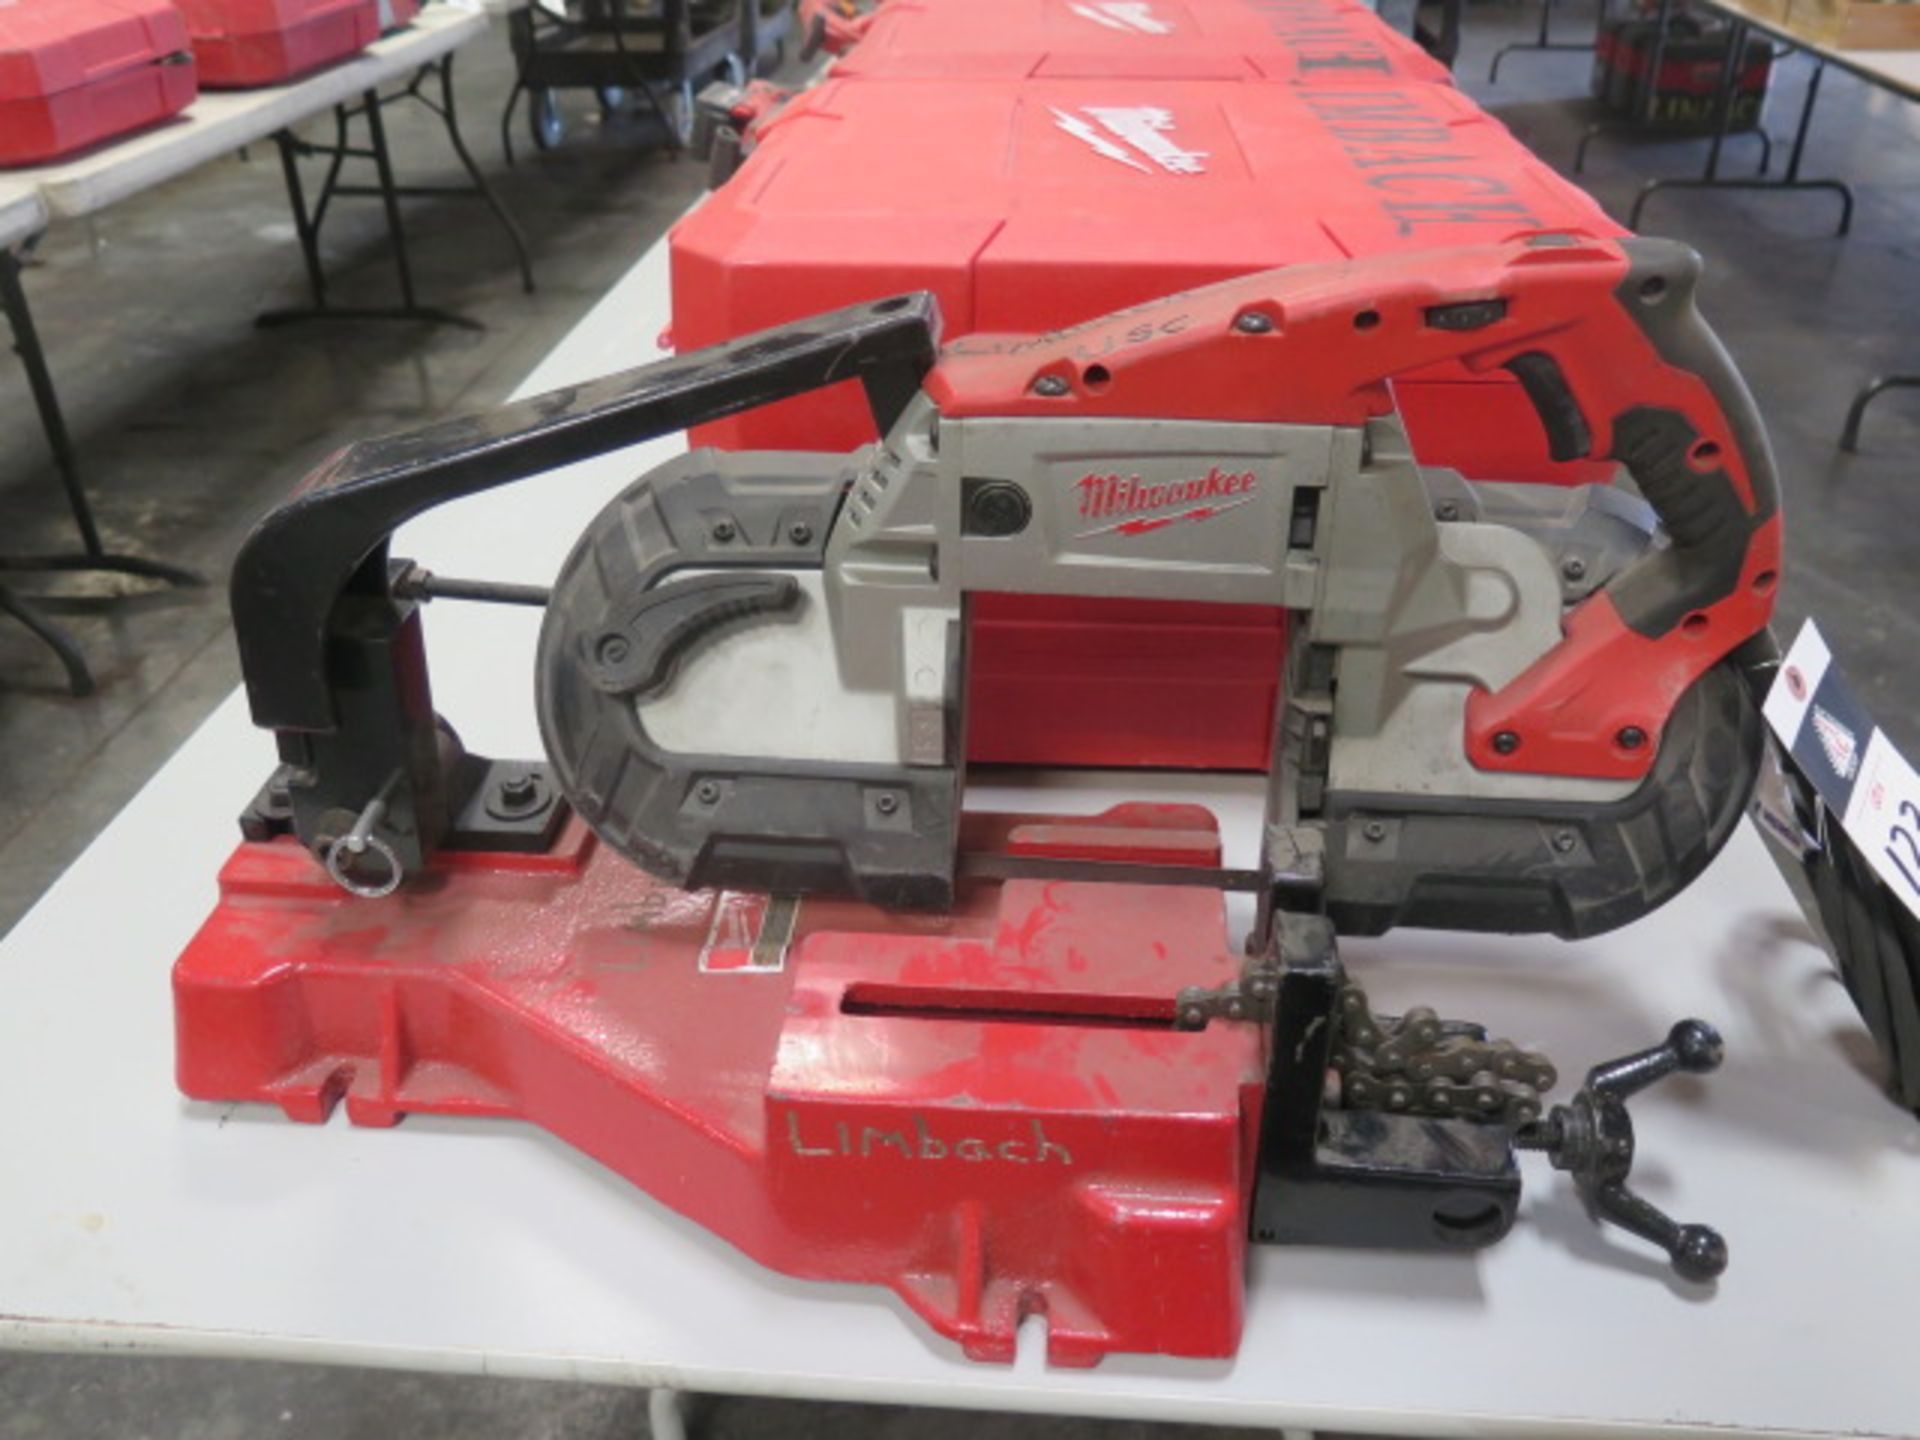 Milwaukee Deep Cut Electric Band Saw w/ Saw Stand (SOLD AS-IS - NO WARRANTY) - Image 2 of 5